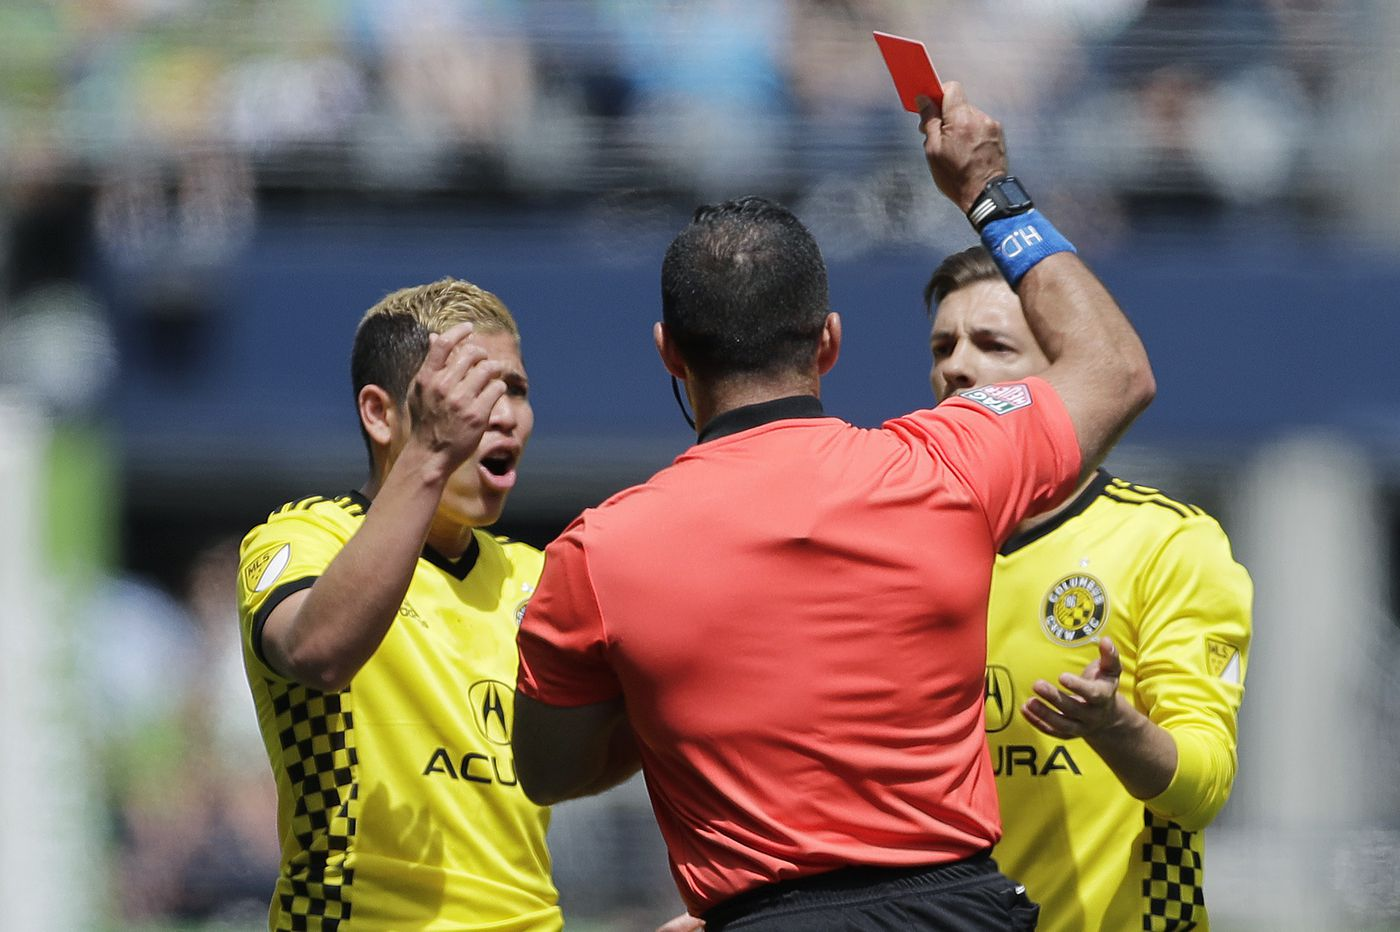 Union for MLS and NWSL referees takes strike authorization vote, claims PRO is delaying CBA talks